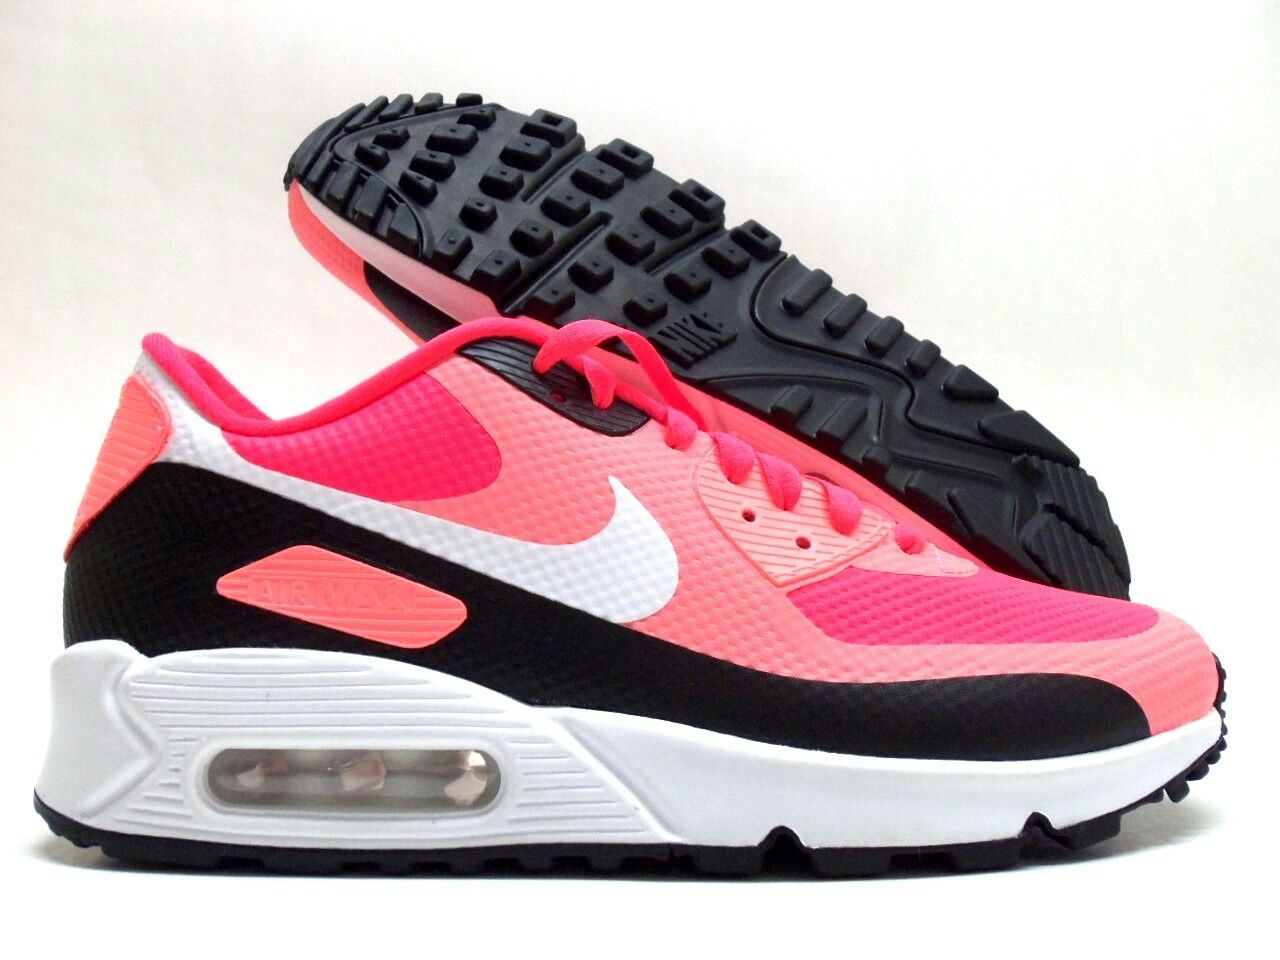 NIKE AIR MAX 90 HYPERFUSE ID INFRARED/WHITE-BLACK SIZE WOMEN'S 8.5 [653536-984]